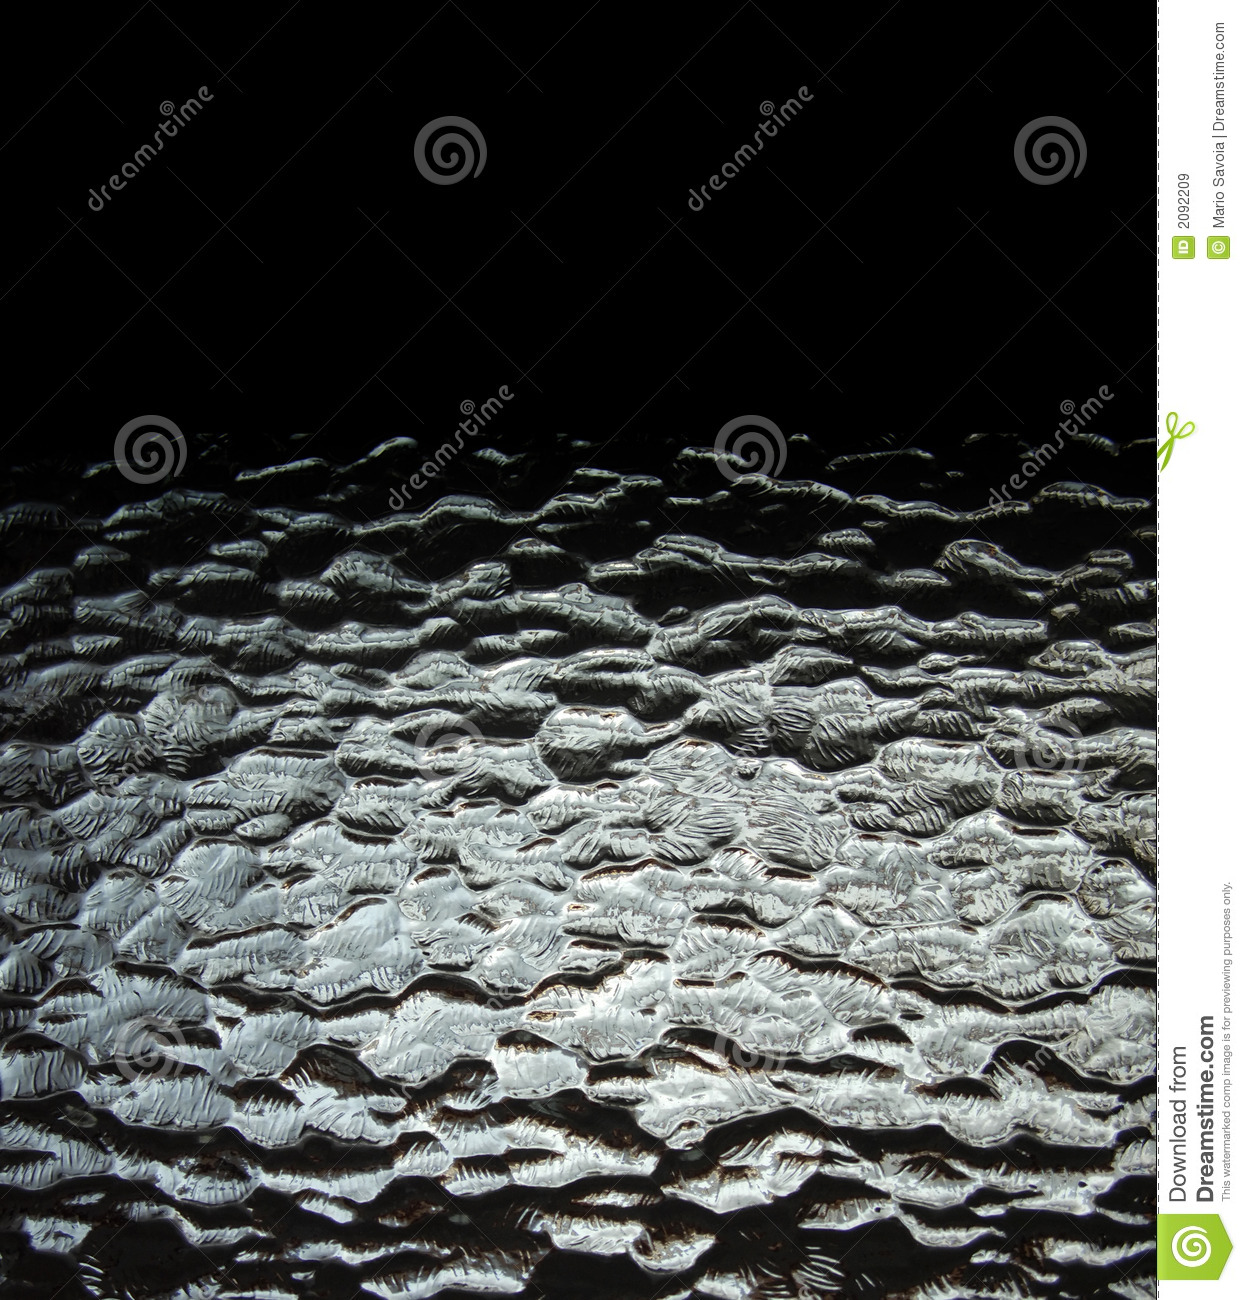 wavy glass black background royalty free stock images